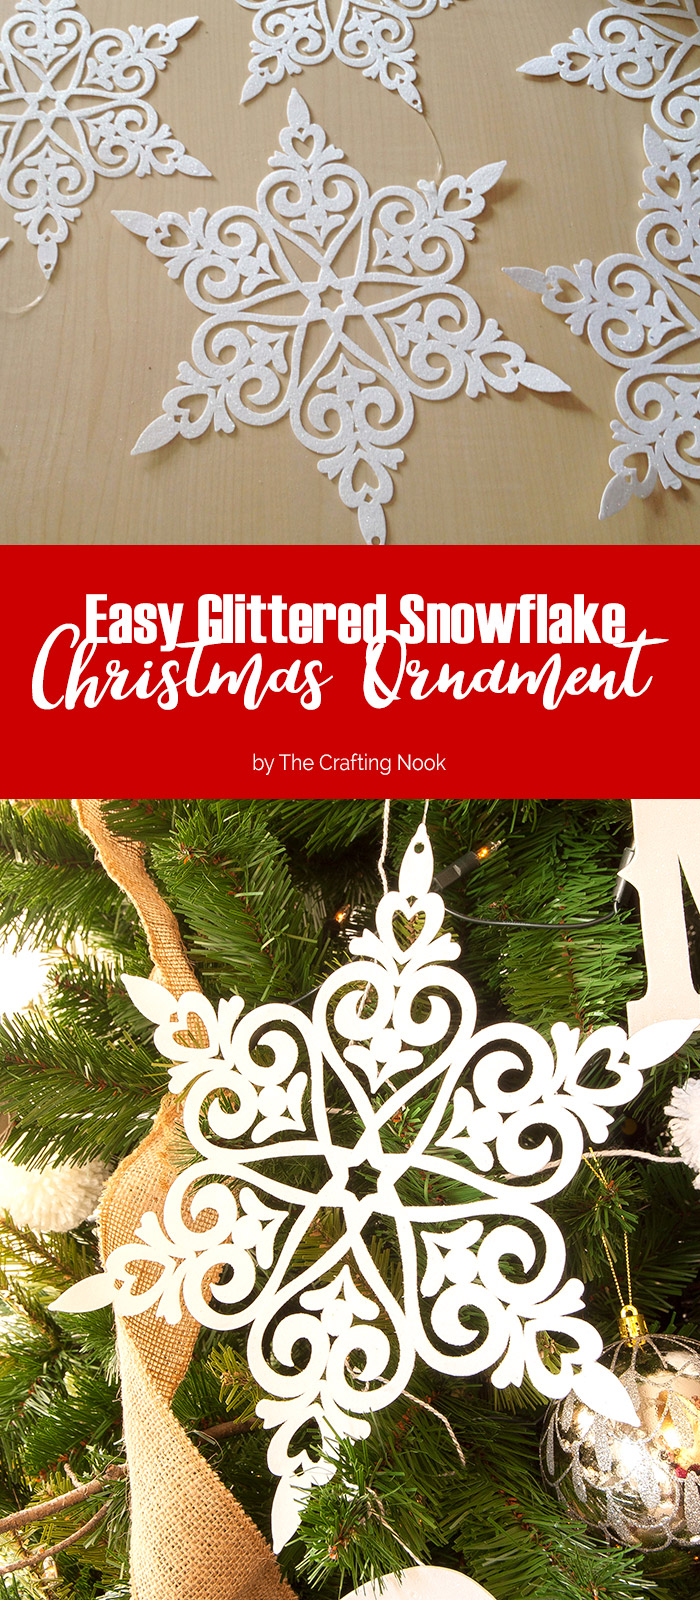 Easy Glittered Snowflake Christmas Ornaments